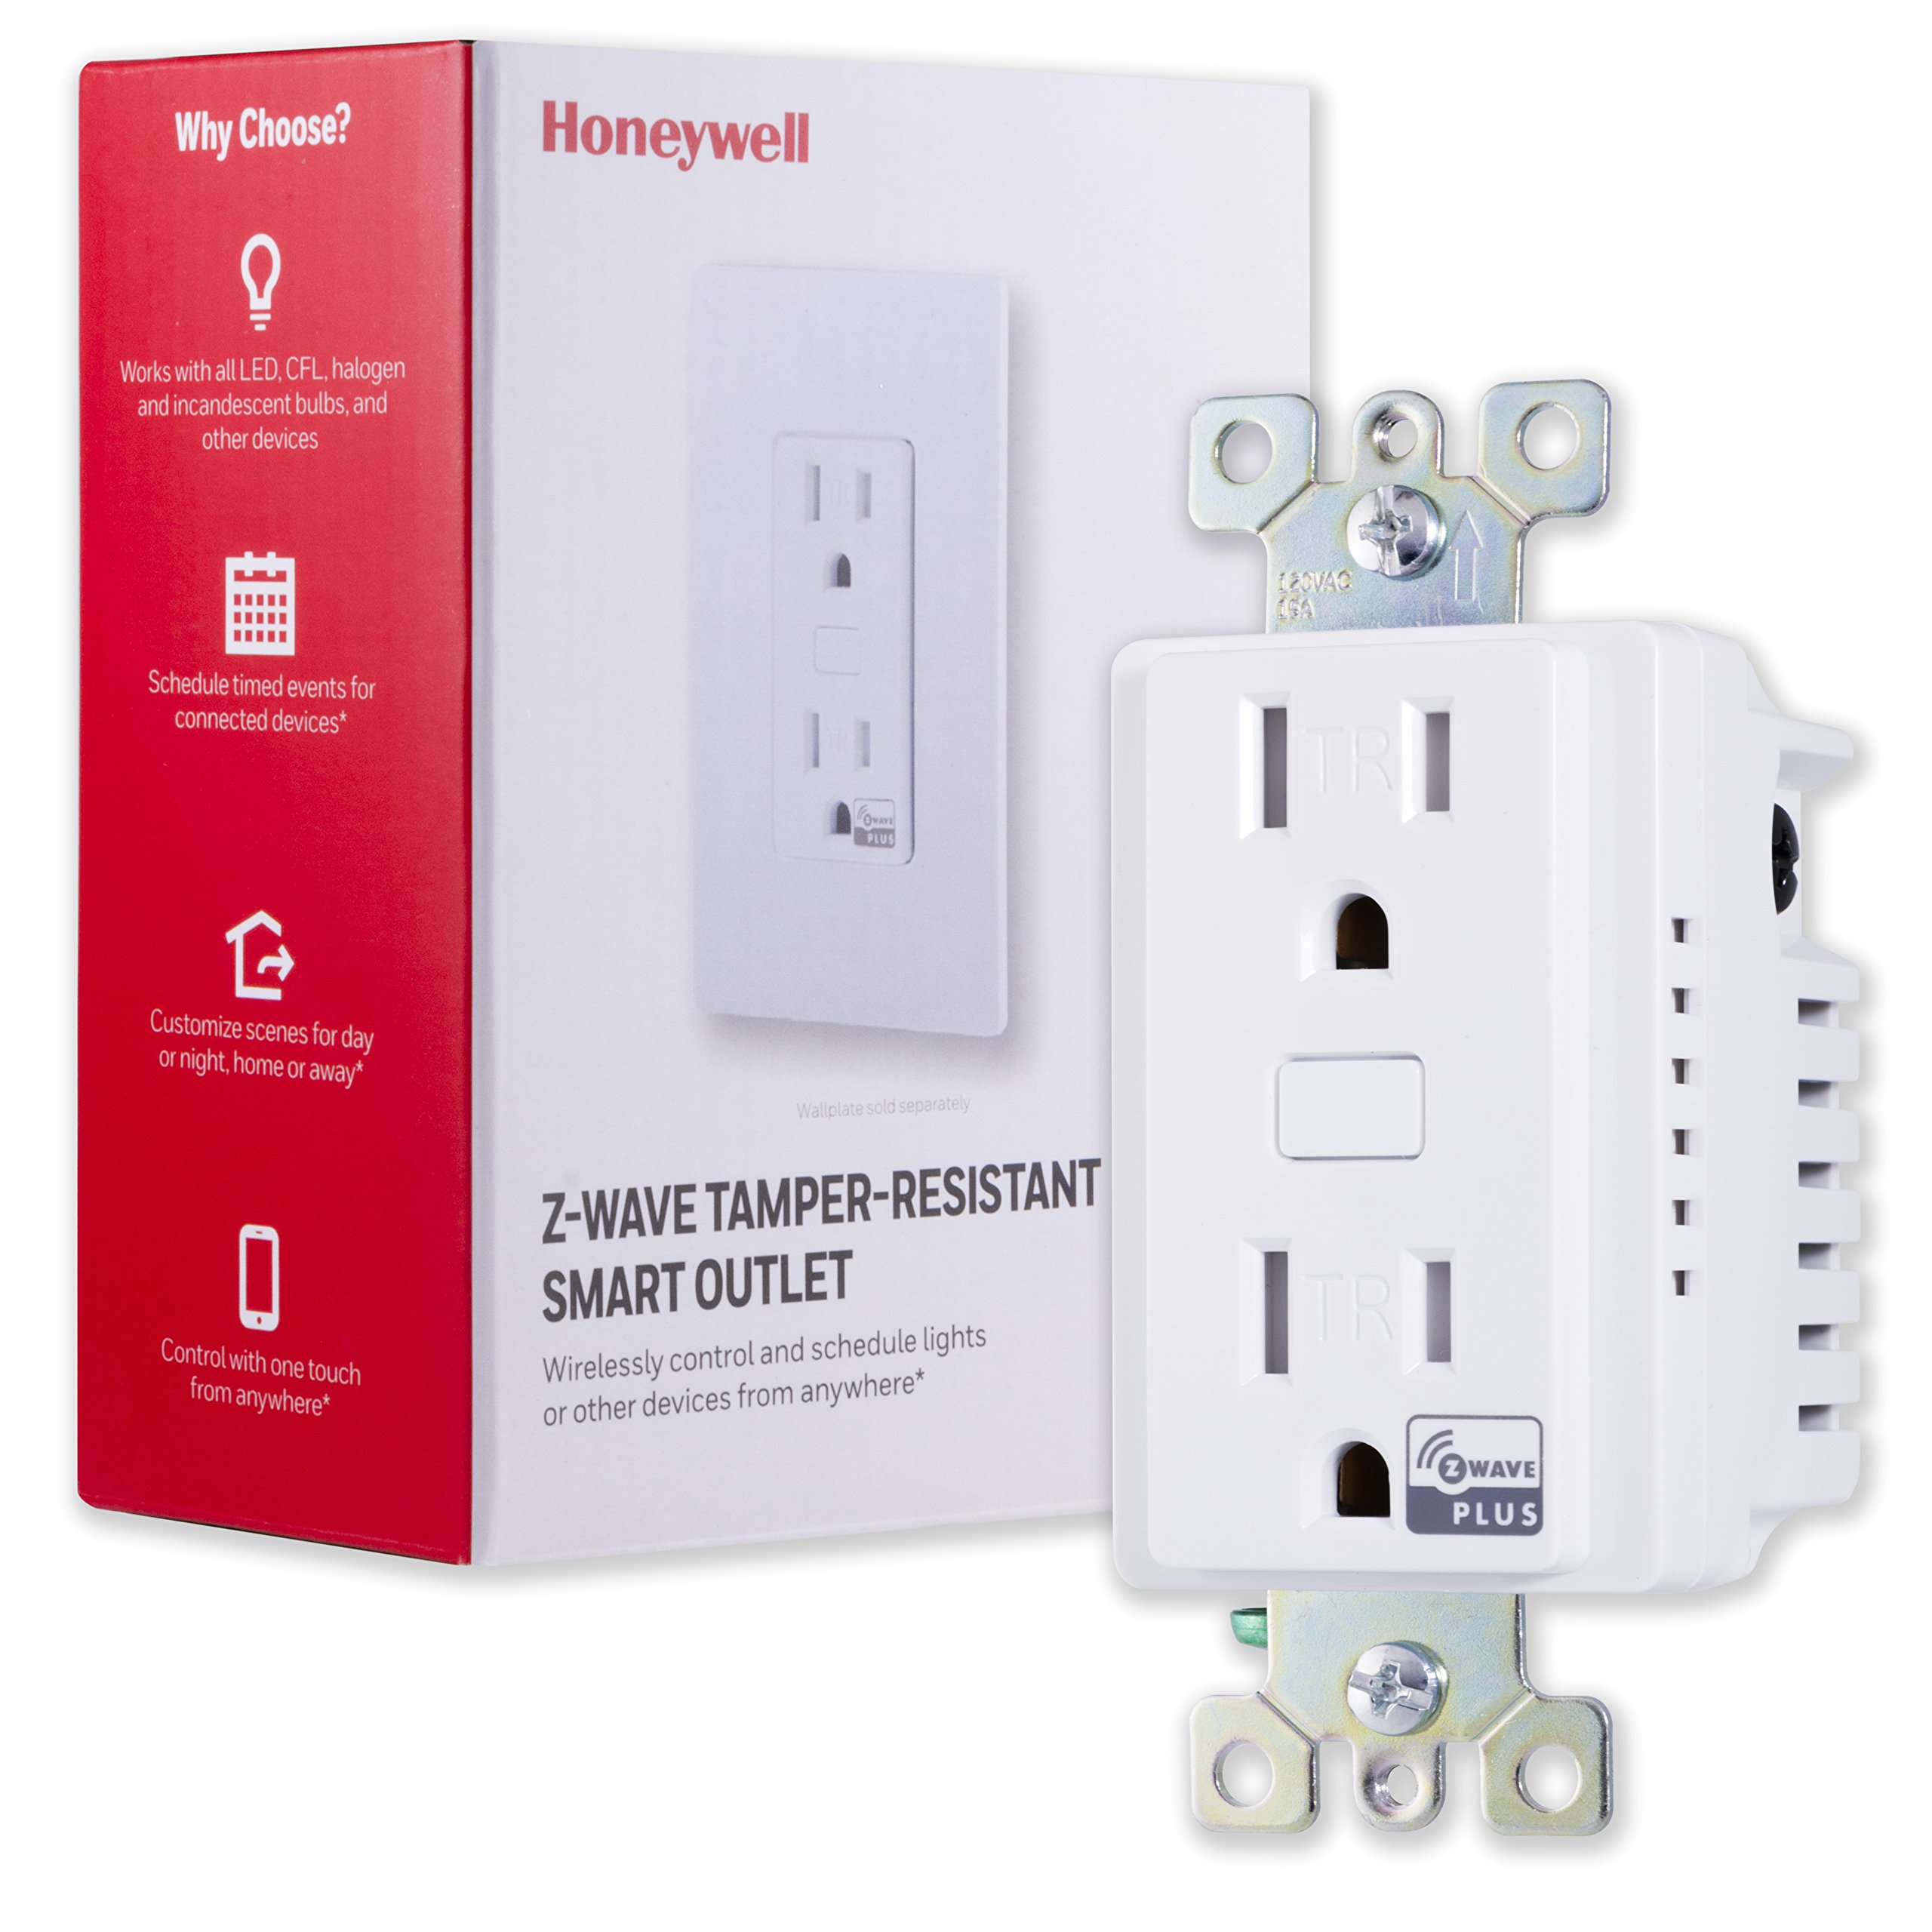 Honeywell Z-Wave Plus Wireless Smart Lighting Control Duplex Receptacle Outlet, On/Off, In-Wall, White, Tamper Resistant, 1 Always On / 1 Controllable, Works with Amazon Alexa (Hub Required), 39349